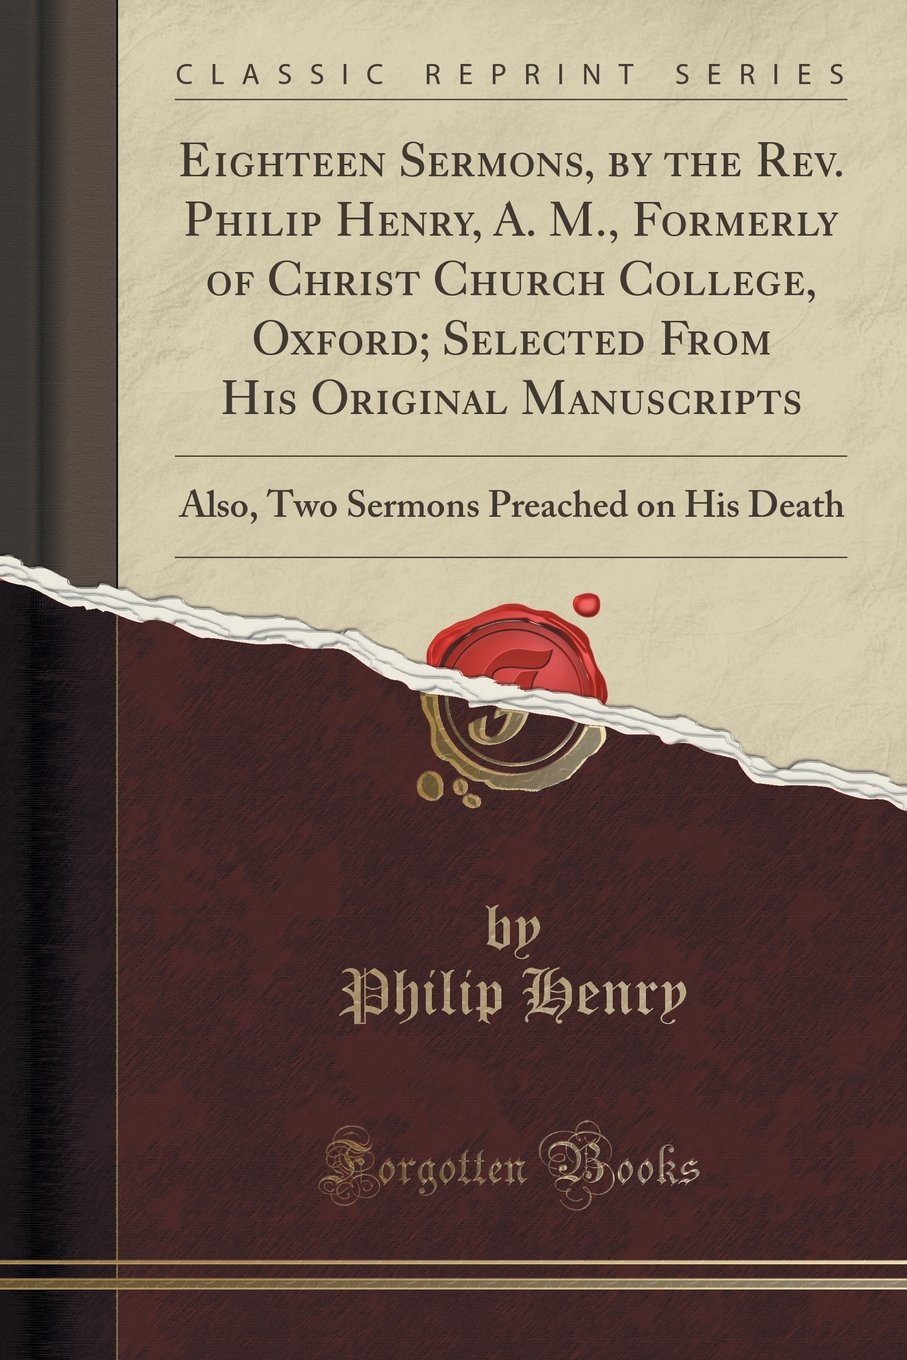 Eighteen Sermons, by the Rev. Philip Henry, A. M., Formerly of Christ Church College, Oxford; Selected From His Original Manuscripts: Also, Two Sermons Preached on His Death (Classic Reprint) PDF